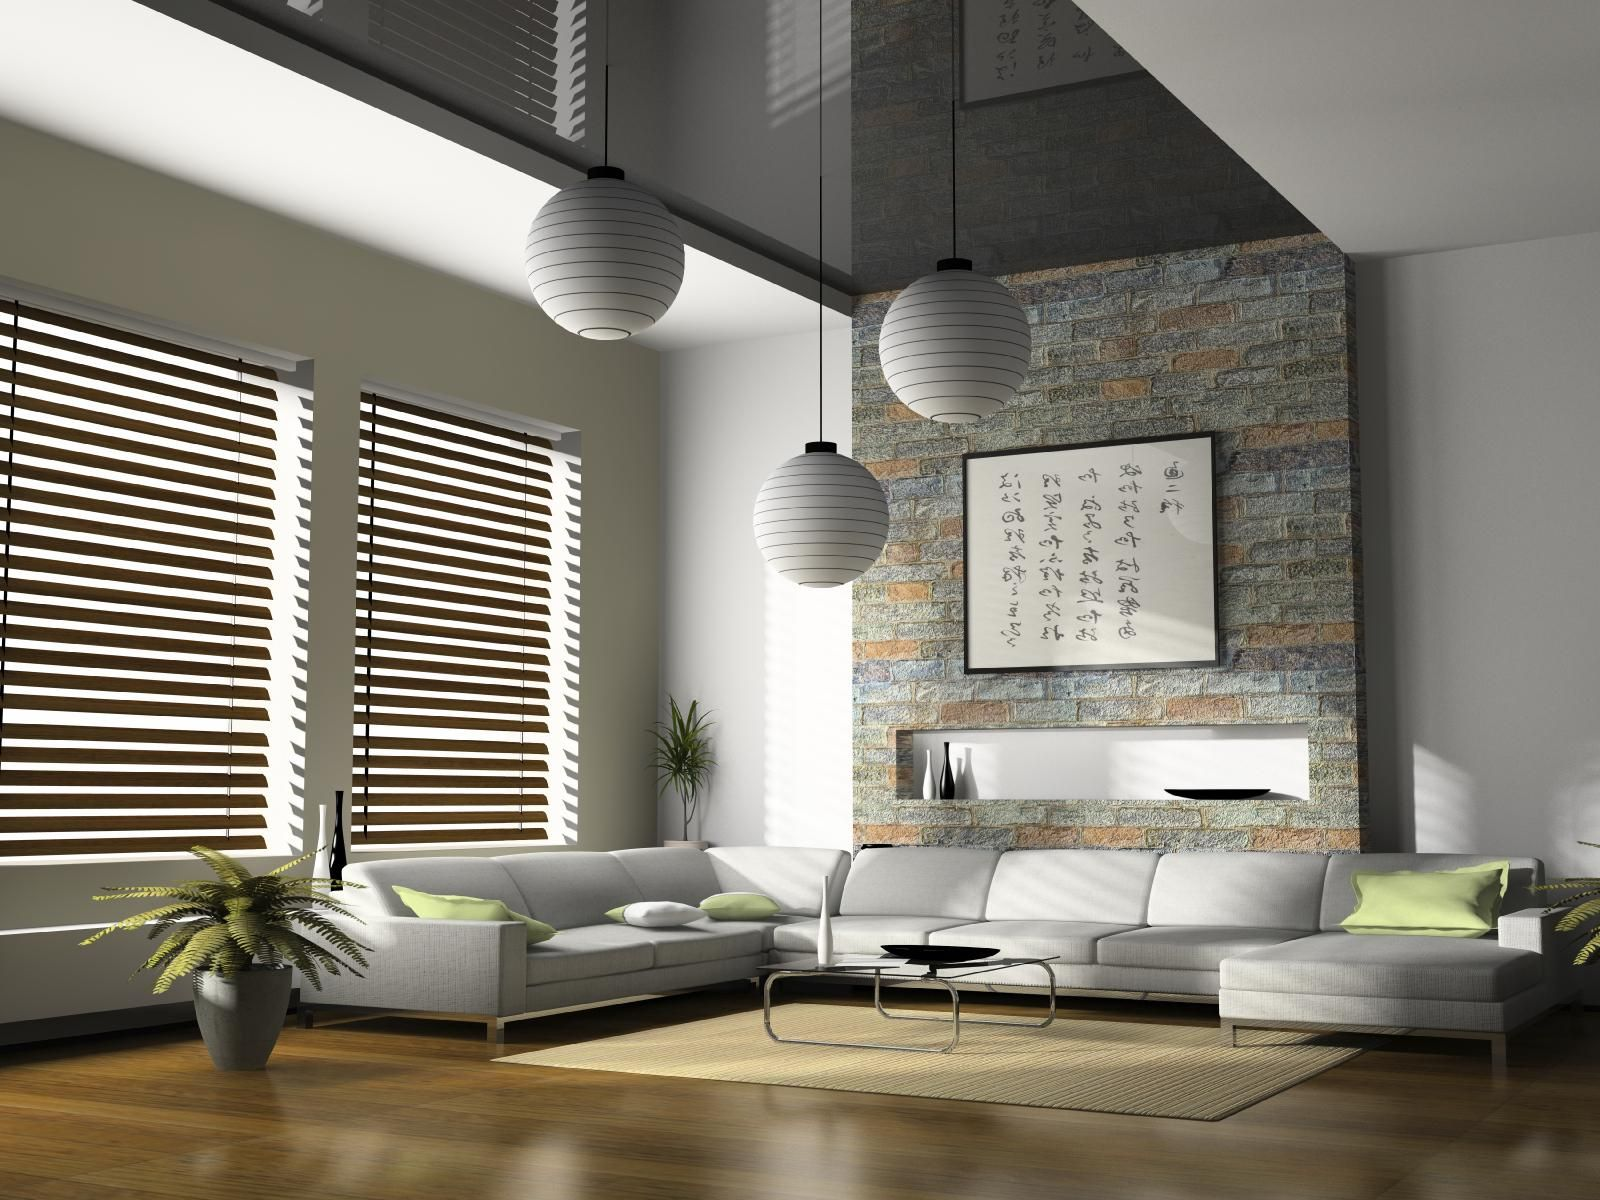 Fashionable Window Blinds Design In Modern Style Living Room Interior With  Lampion Hang On Ceiling As Part 79